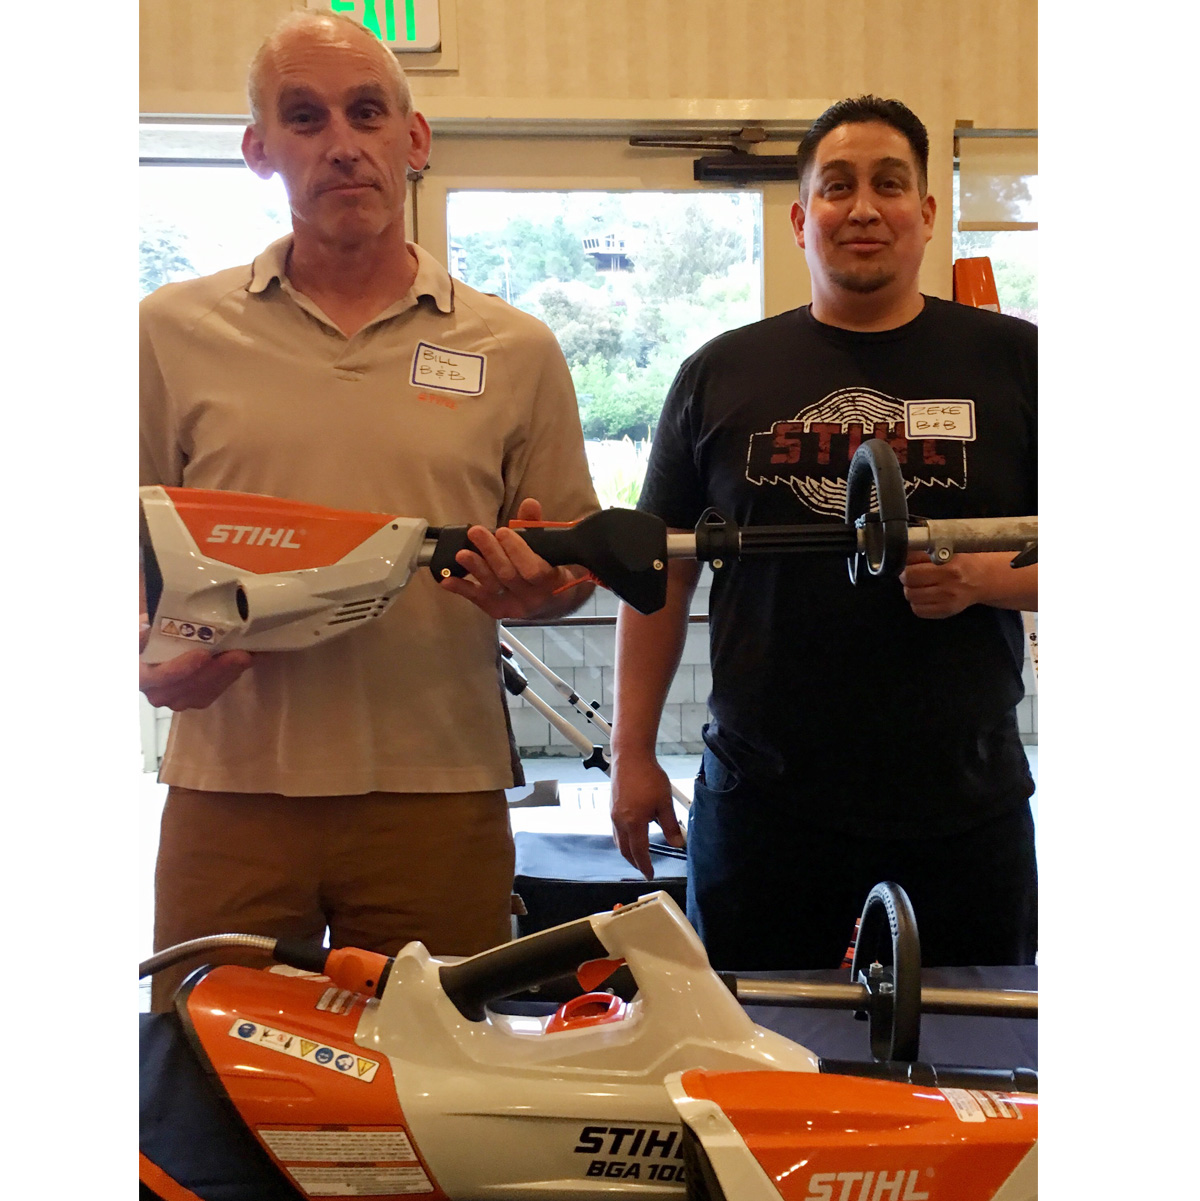 Bill Brice, owner of B&B Small Engine Repair and Zeke with their newest Stihl tools